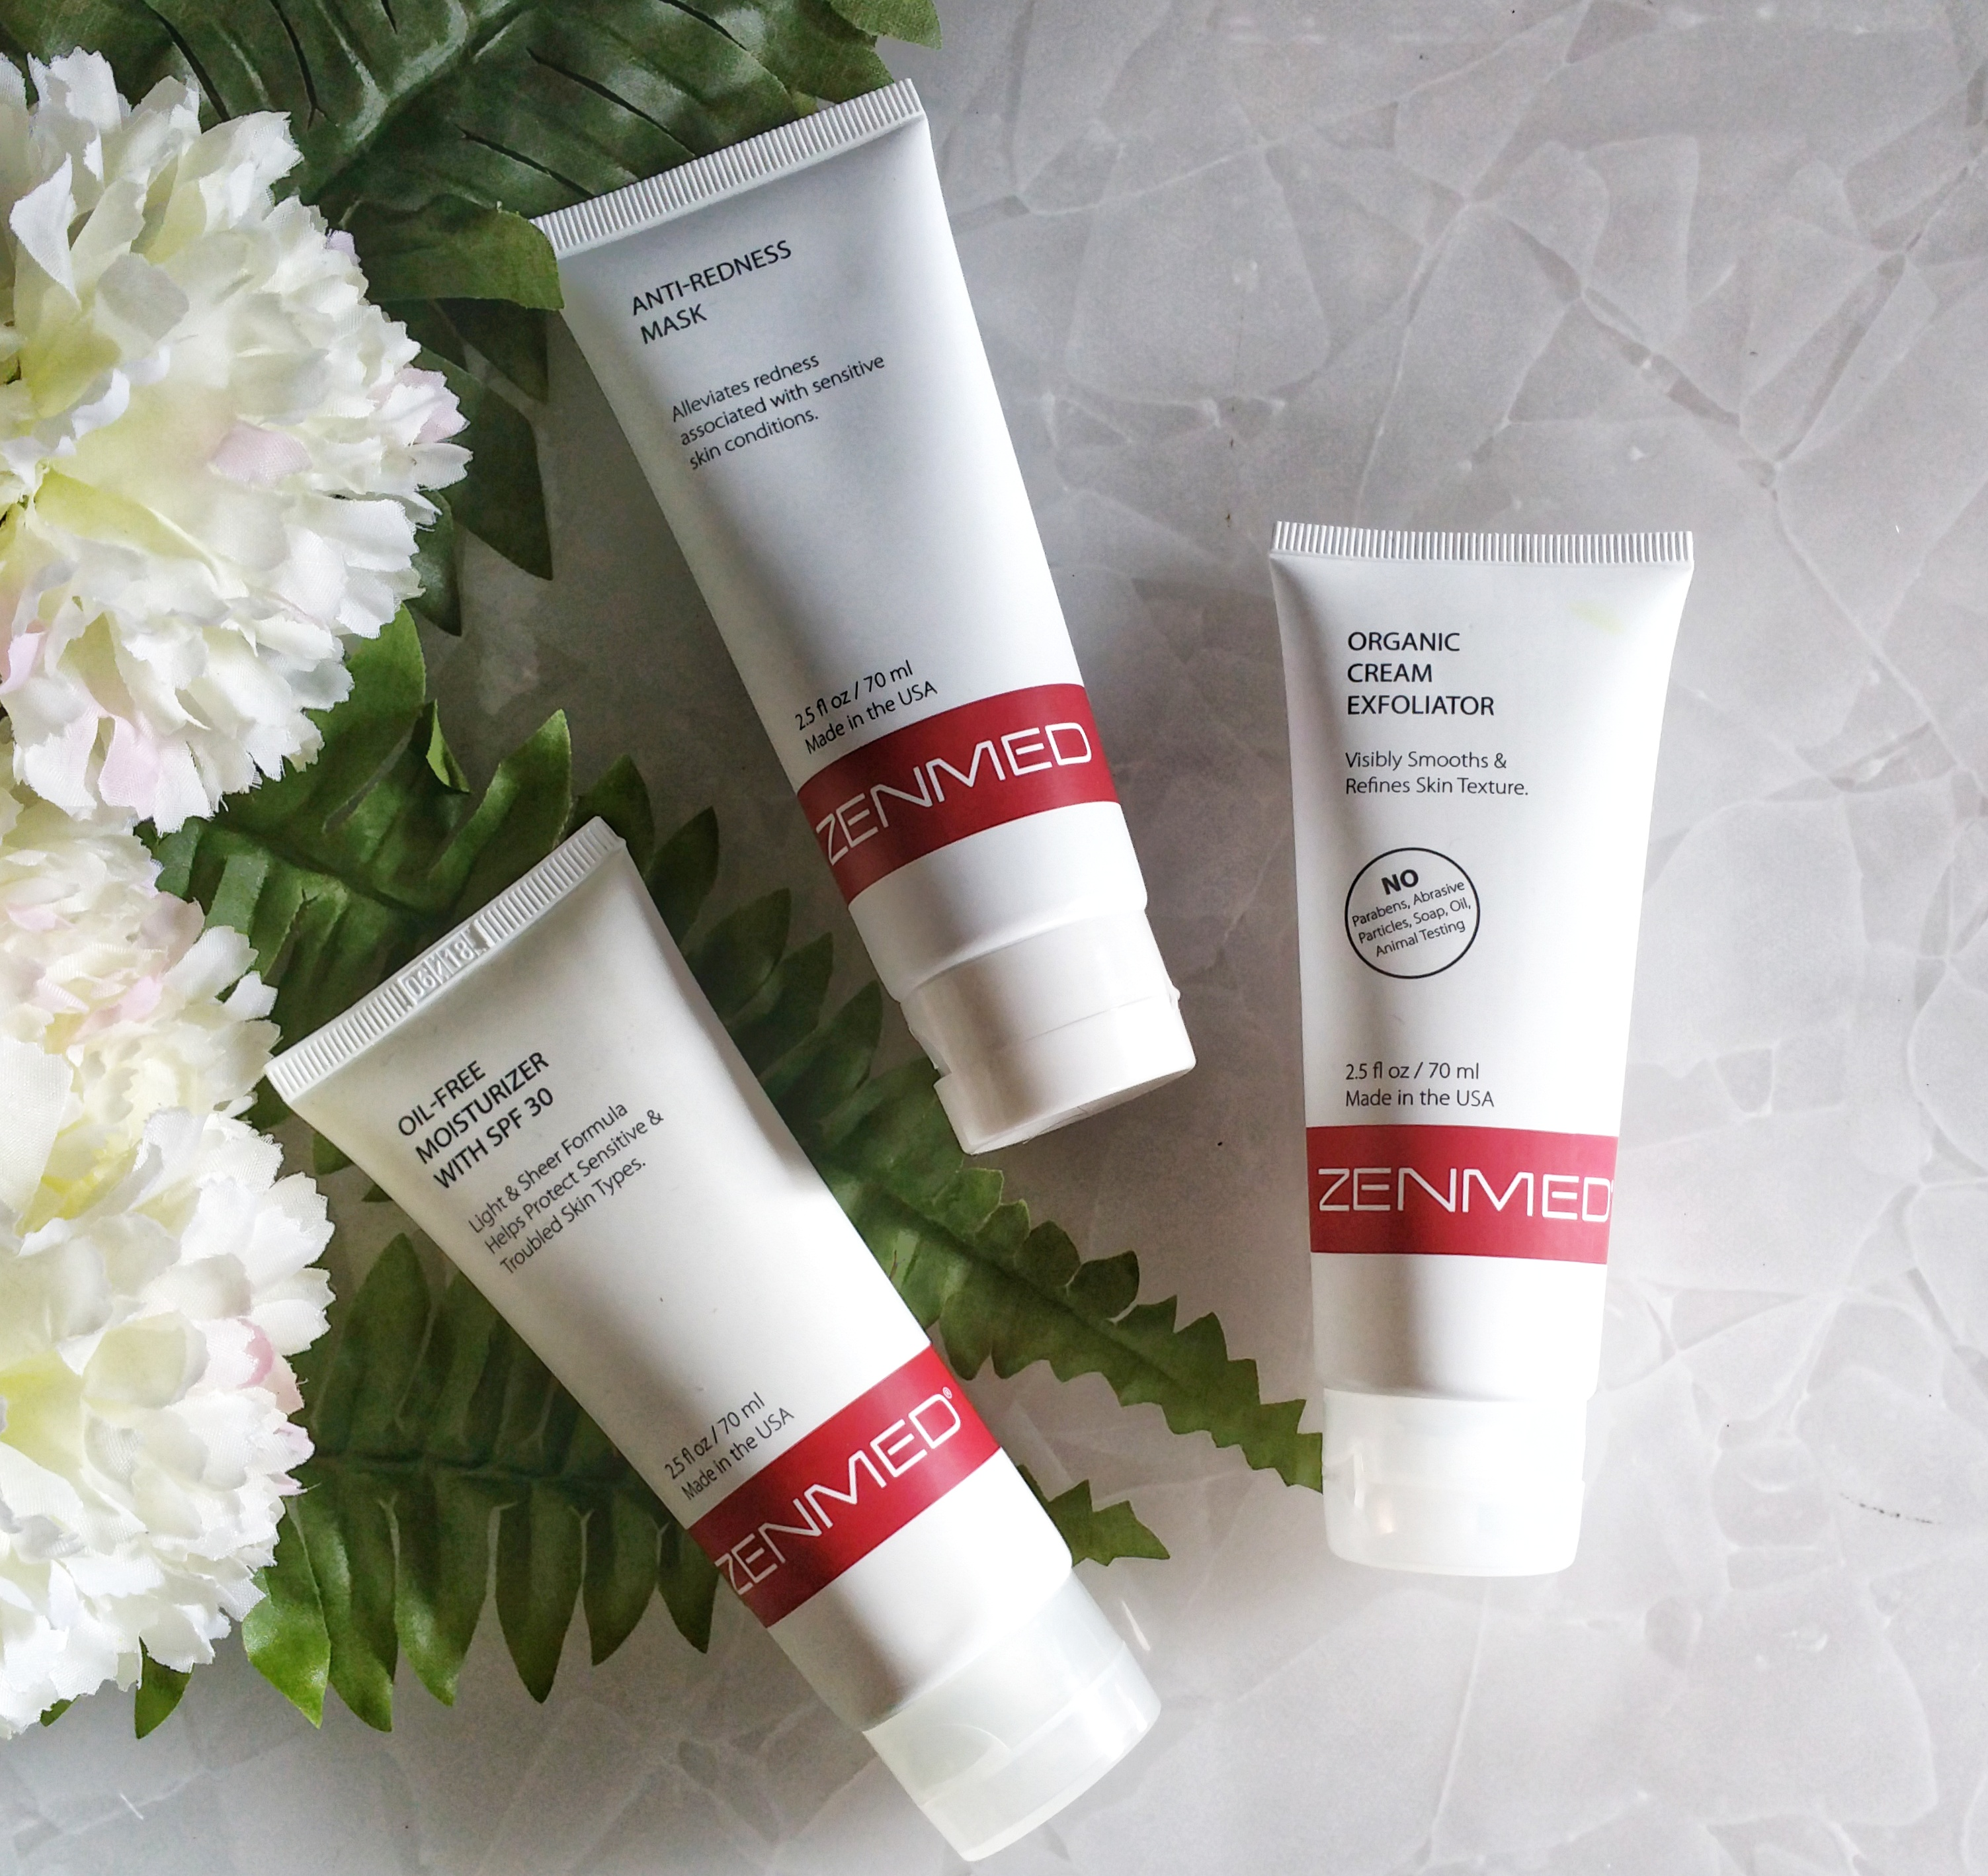 ZenMed, Skincare, skin care, beauty, skin care review, anti-aging, skin support, reconstructive skincare, review, product review, trial, luxury skincare,